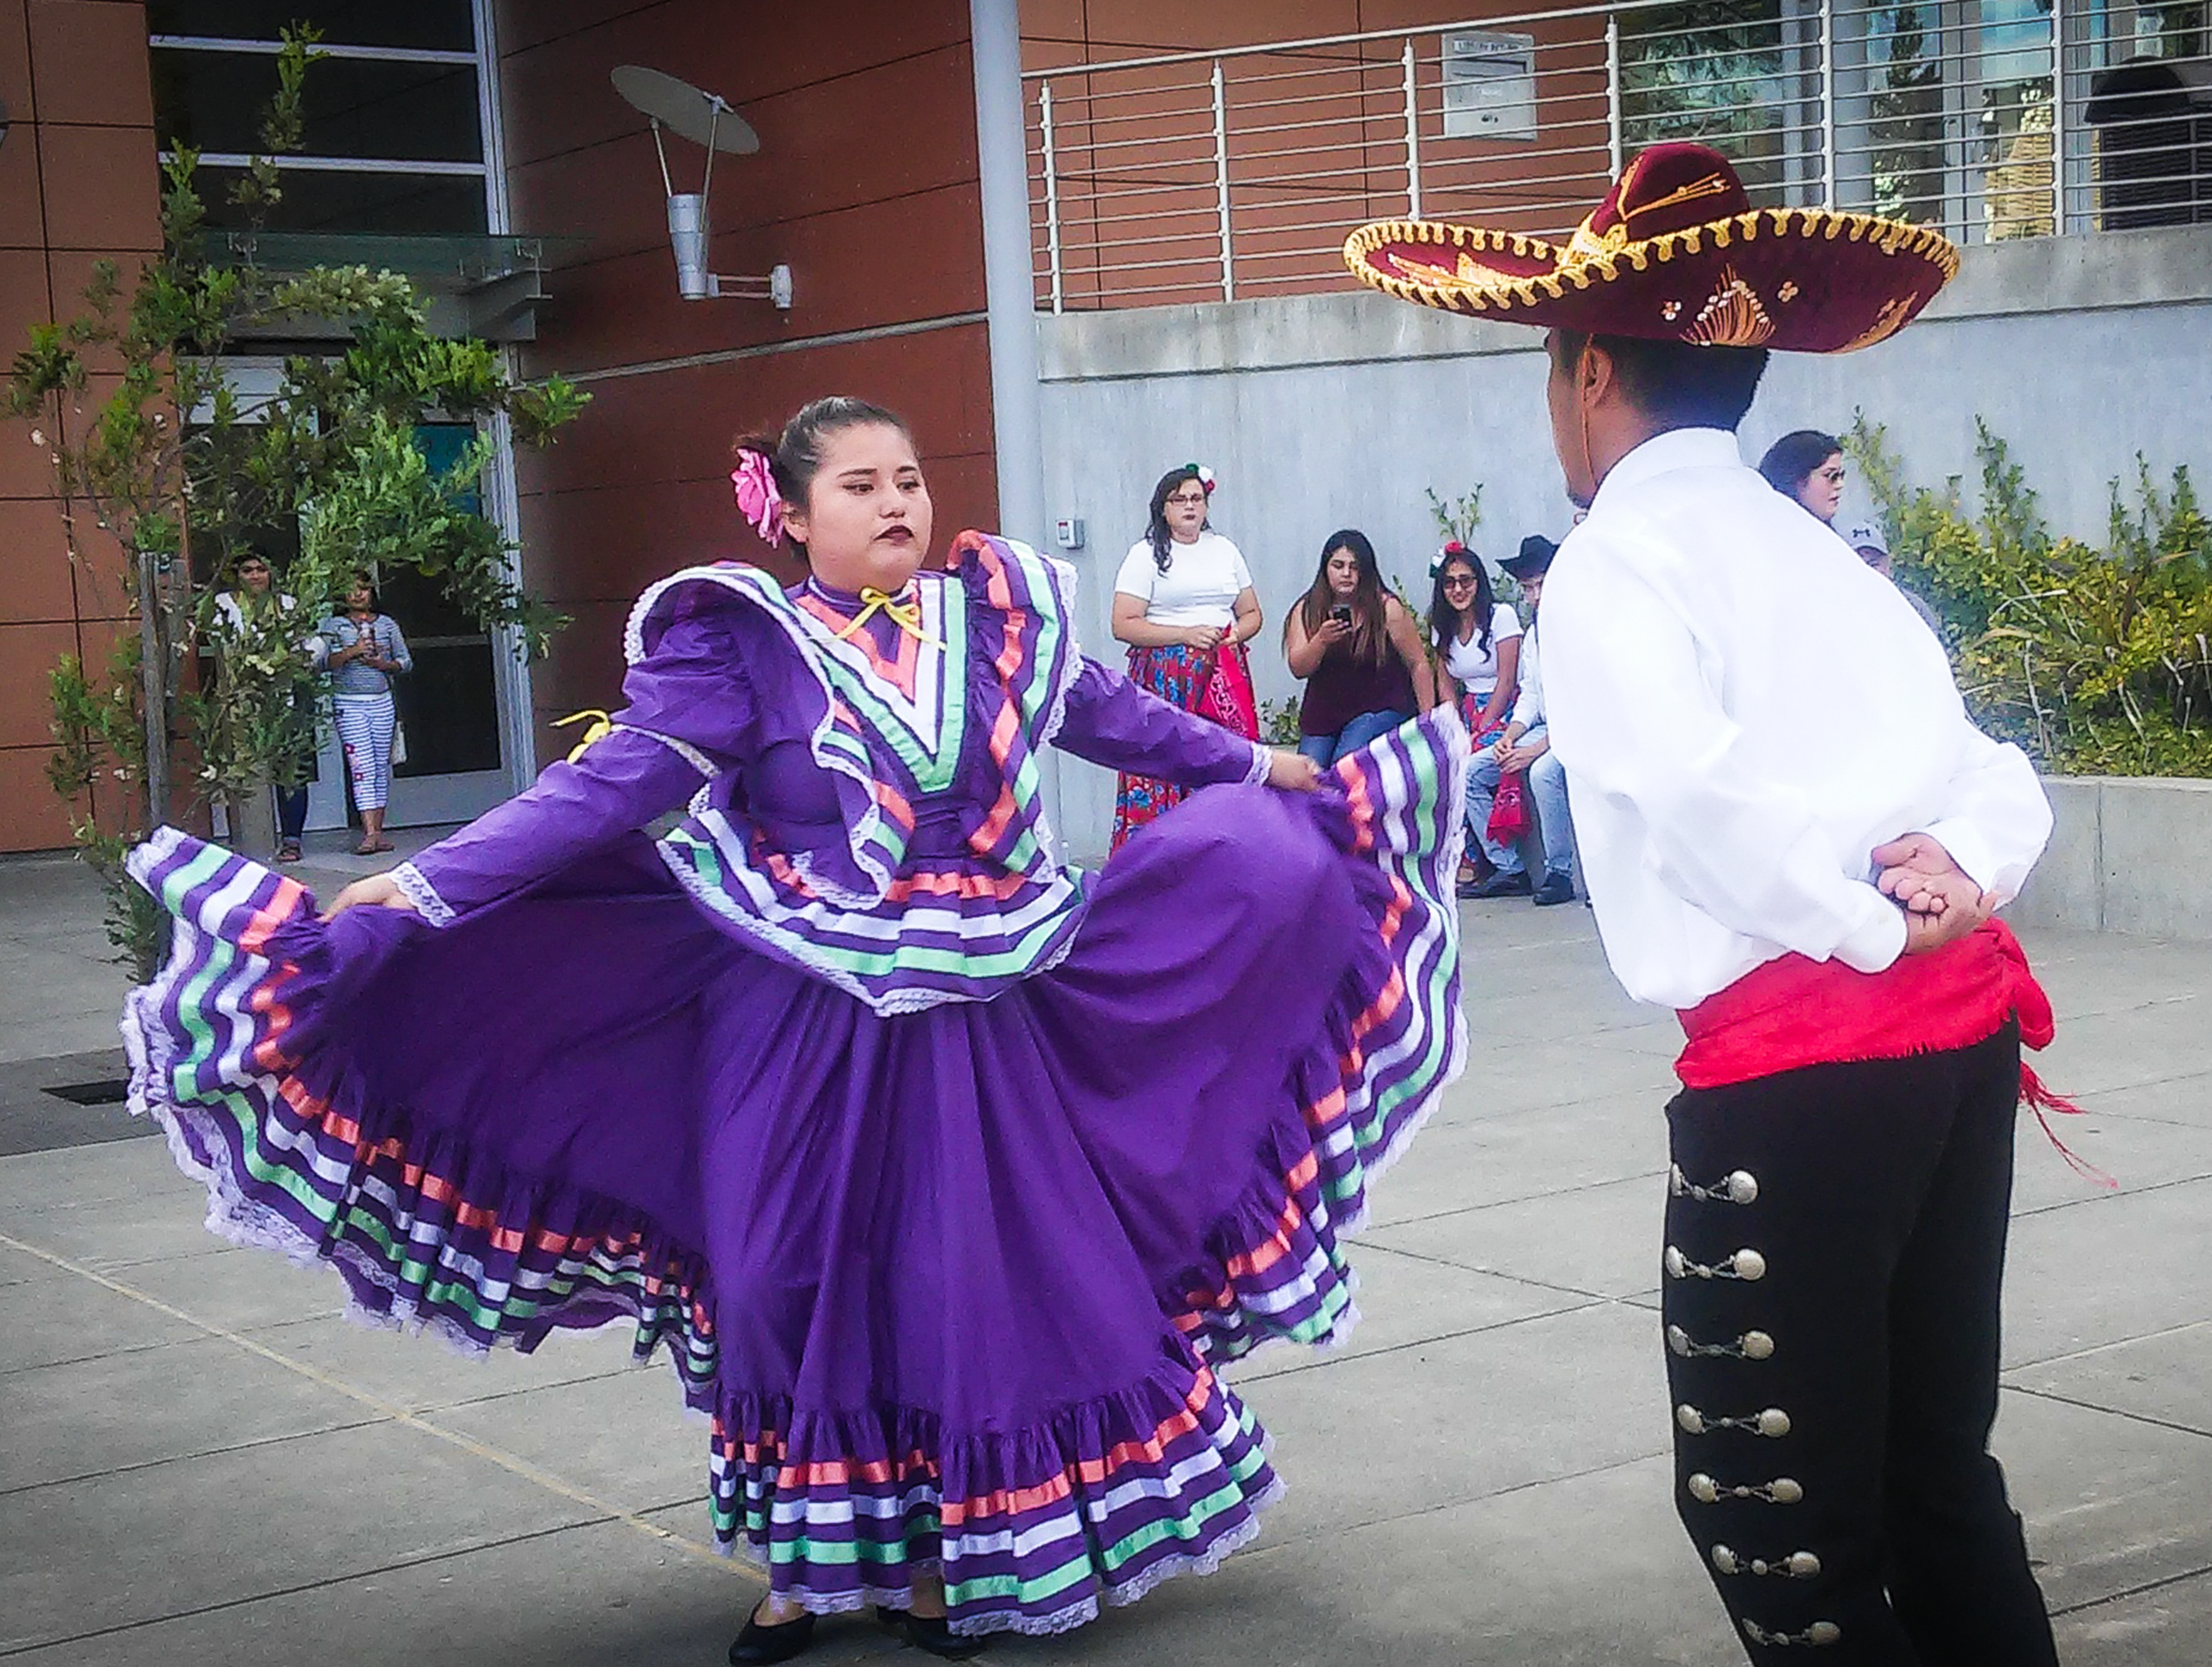 Women in traditional Mexican dress, purple and flowing, dancing with a man with sombrero, white shirt, black pants and red mid-sash